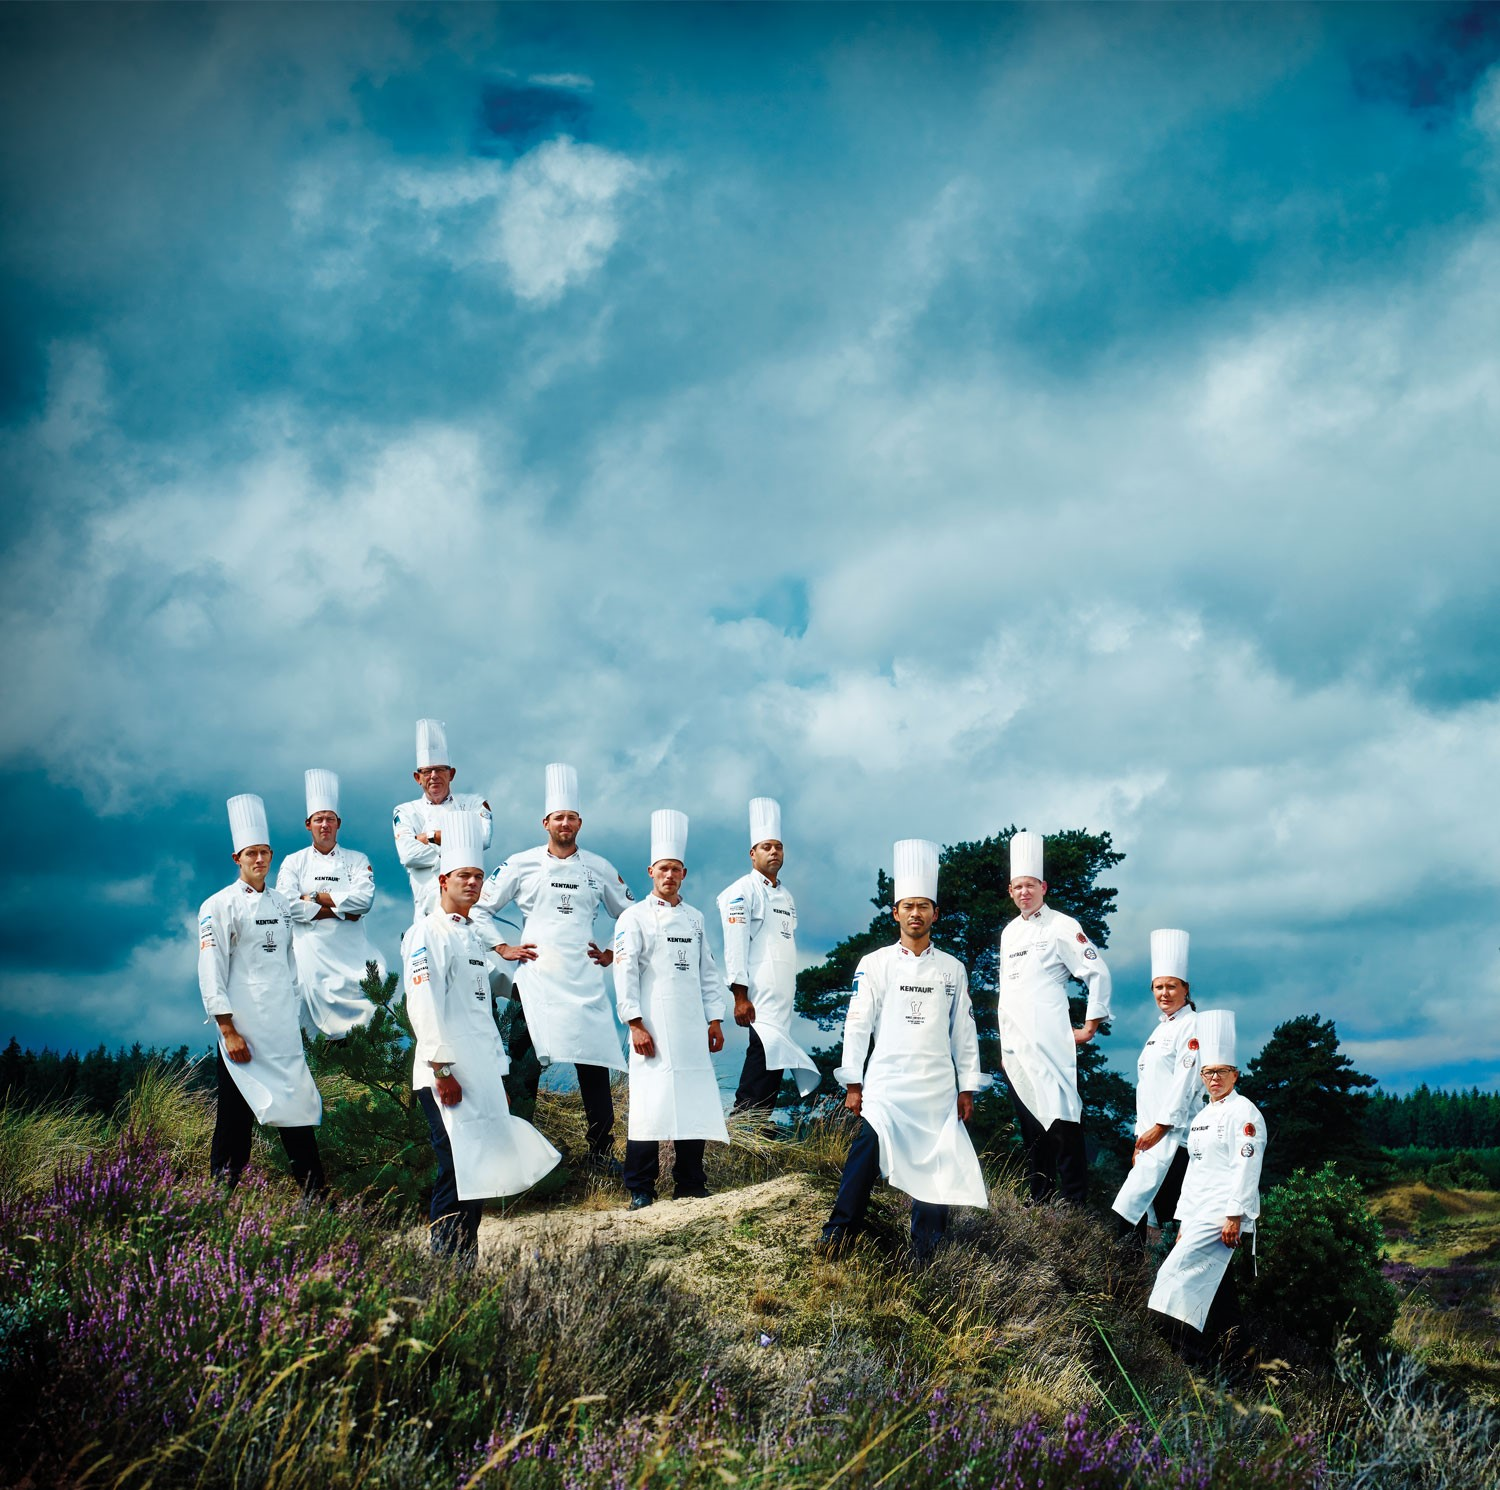 KENTAUR IS SPONSORING THE NATIONAL DANISH CHEFS TEAM